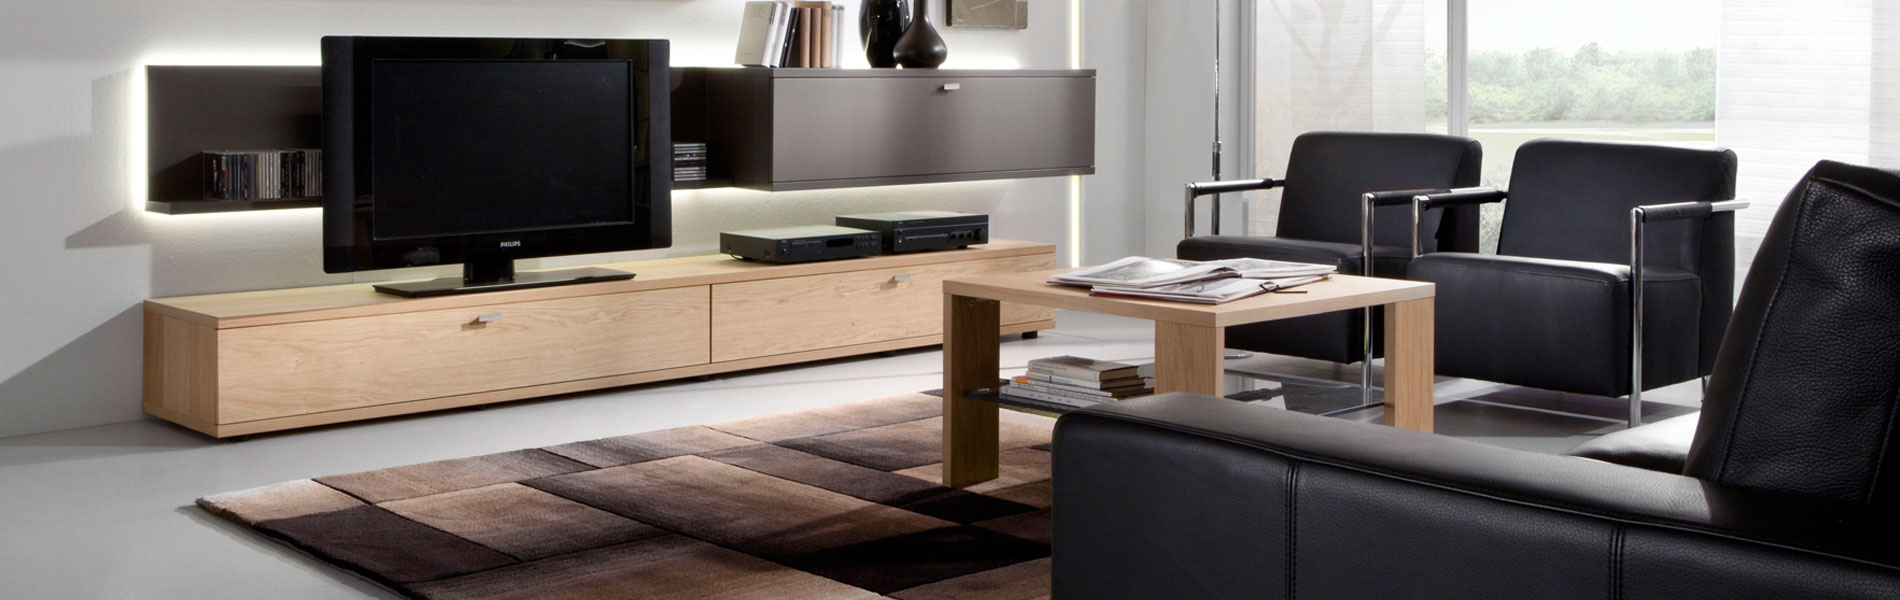 iro m bel von m bel h ffner edle schrankw nde vom experten. Black Bedroom Furniture Sets. Home Design Ideas